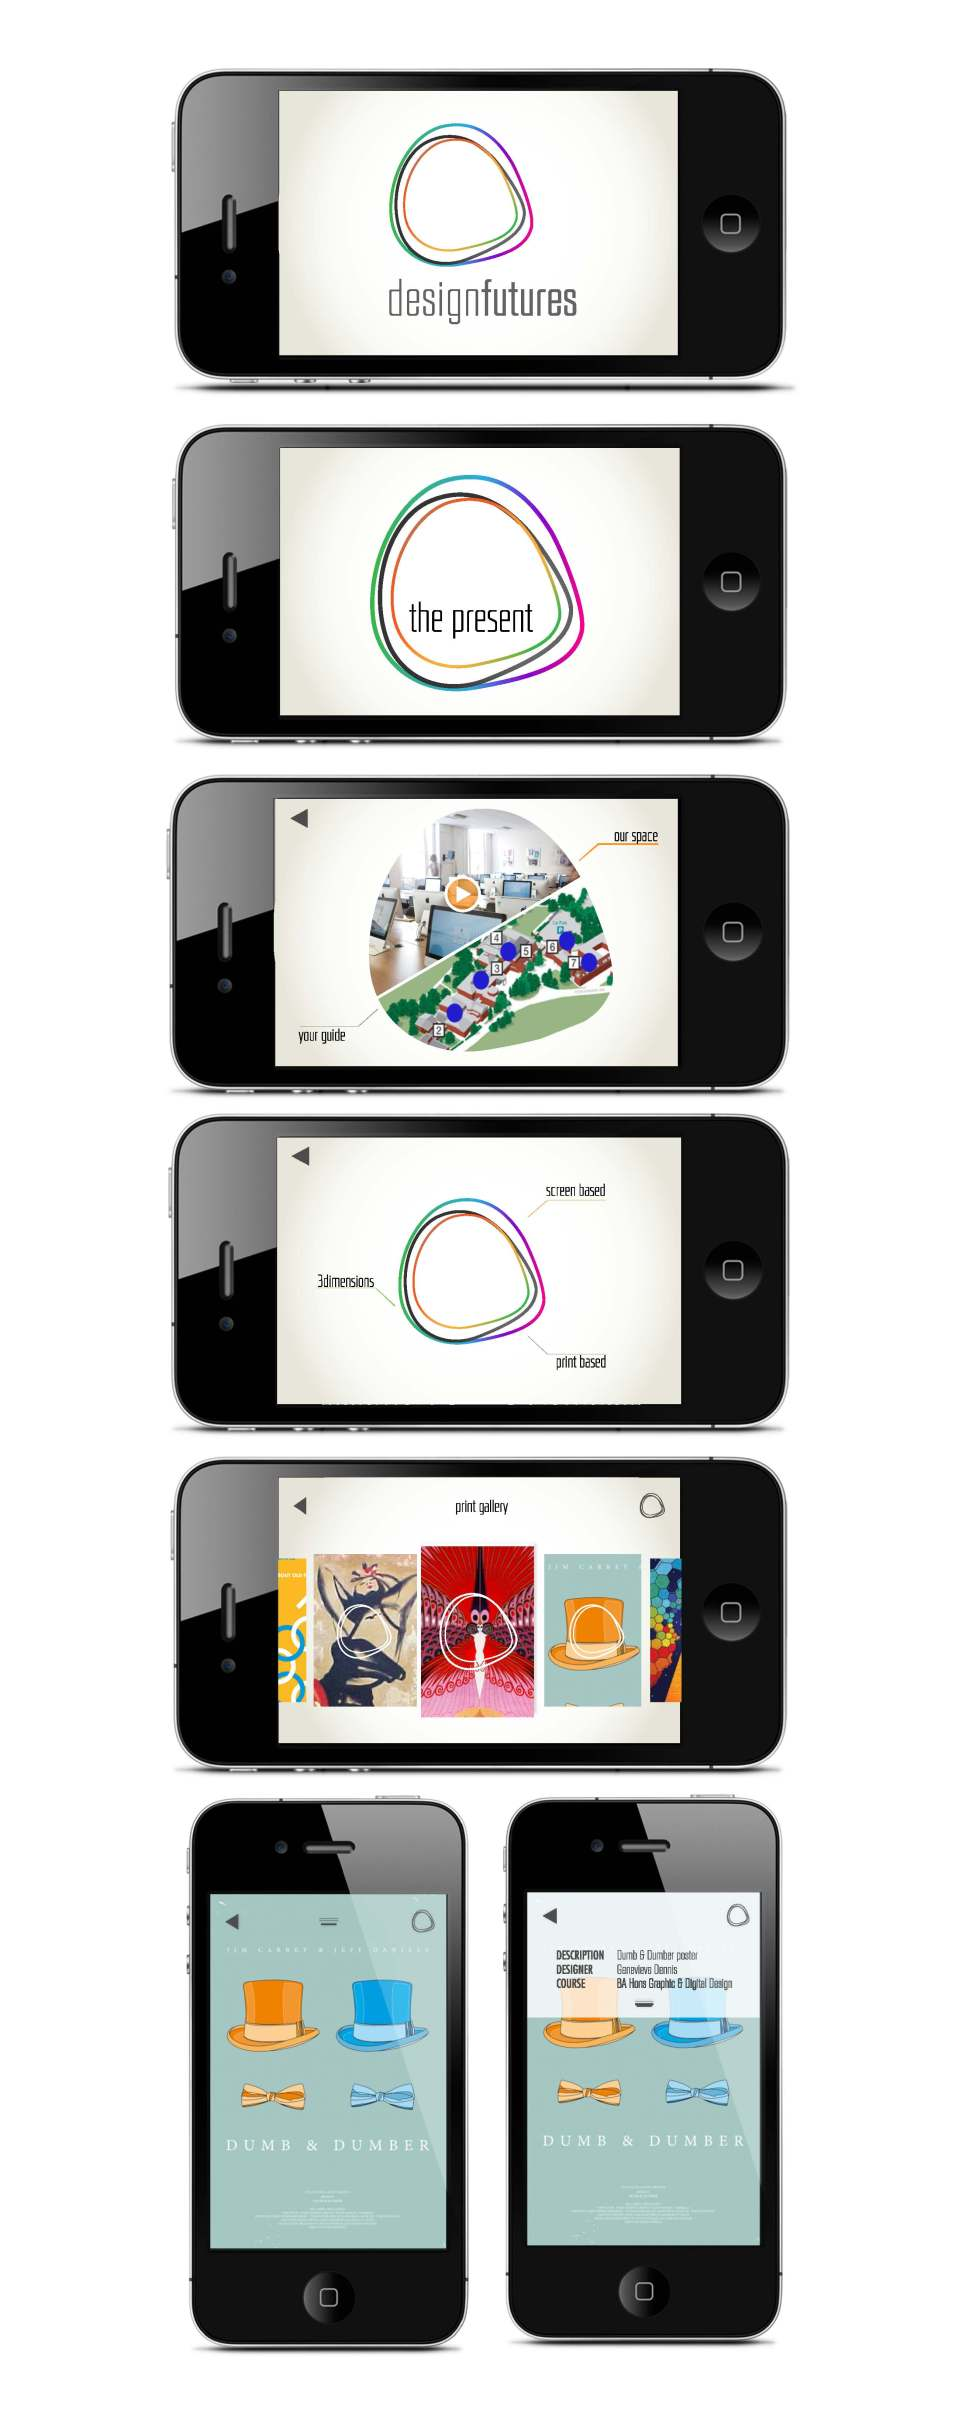 design futures iphone